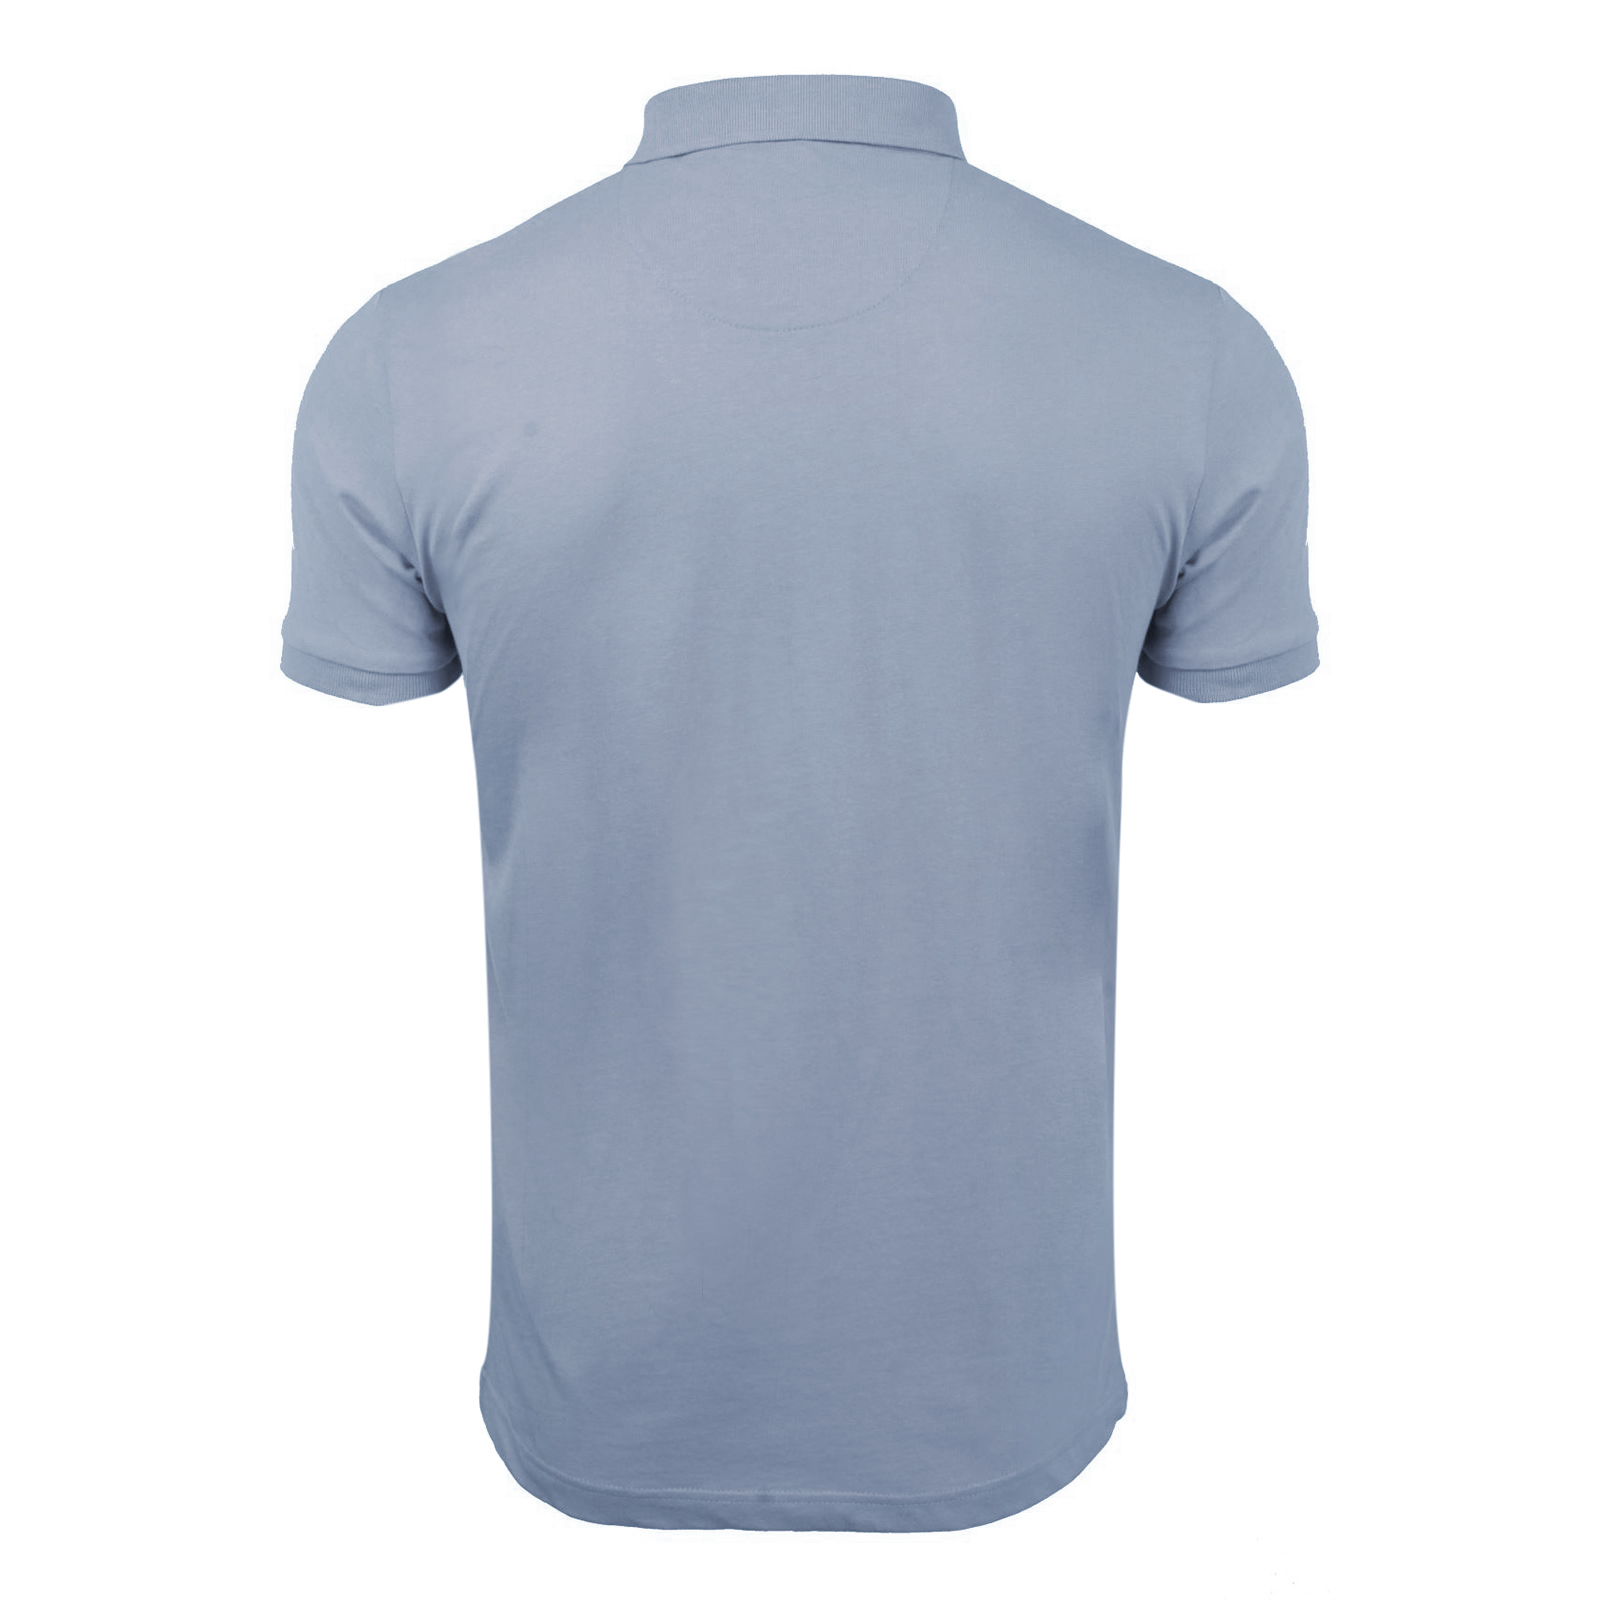 Mens-Polo-T-Shirt-Brave-Soul-Julius-Cotton-Collared-Short-Sleeve-Casual-Top thumbnail 27